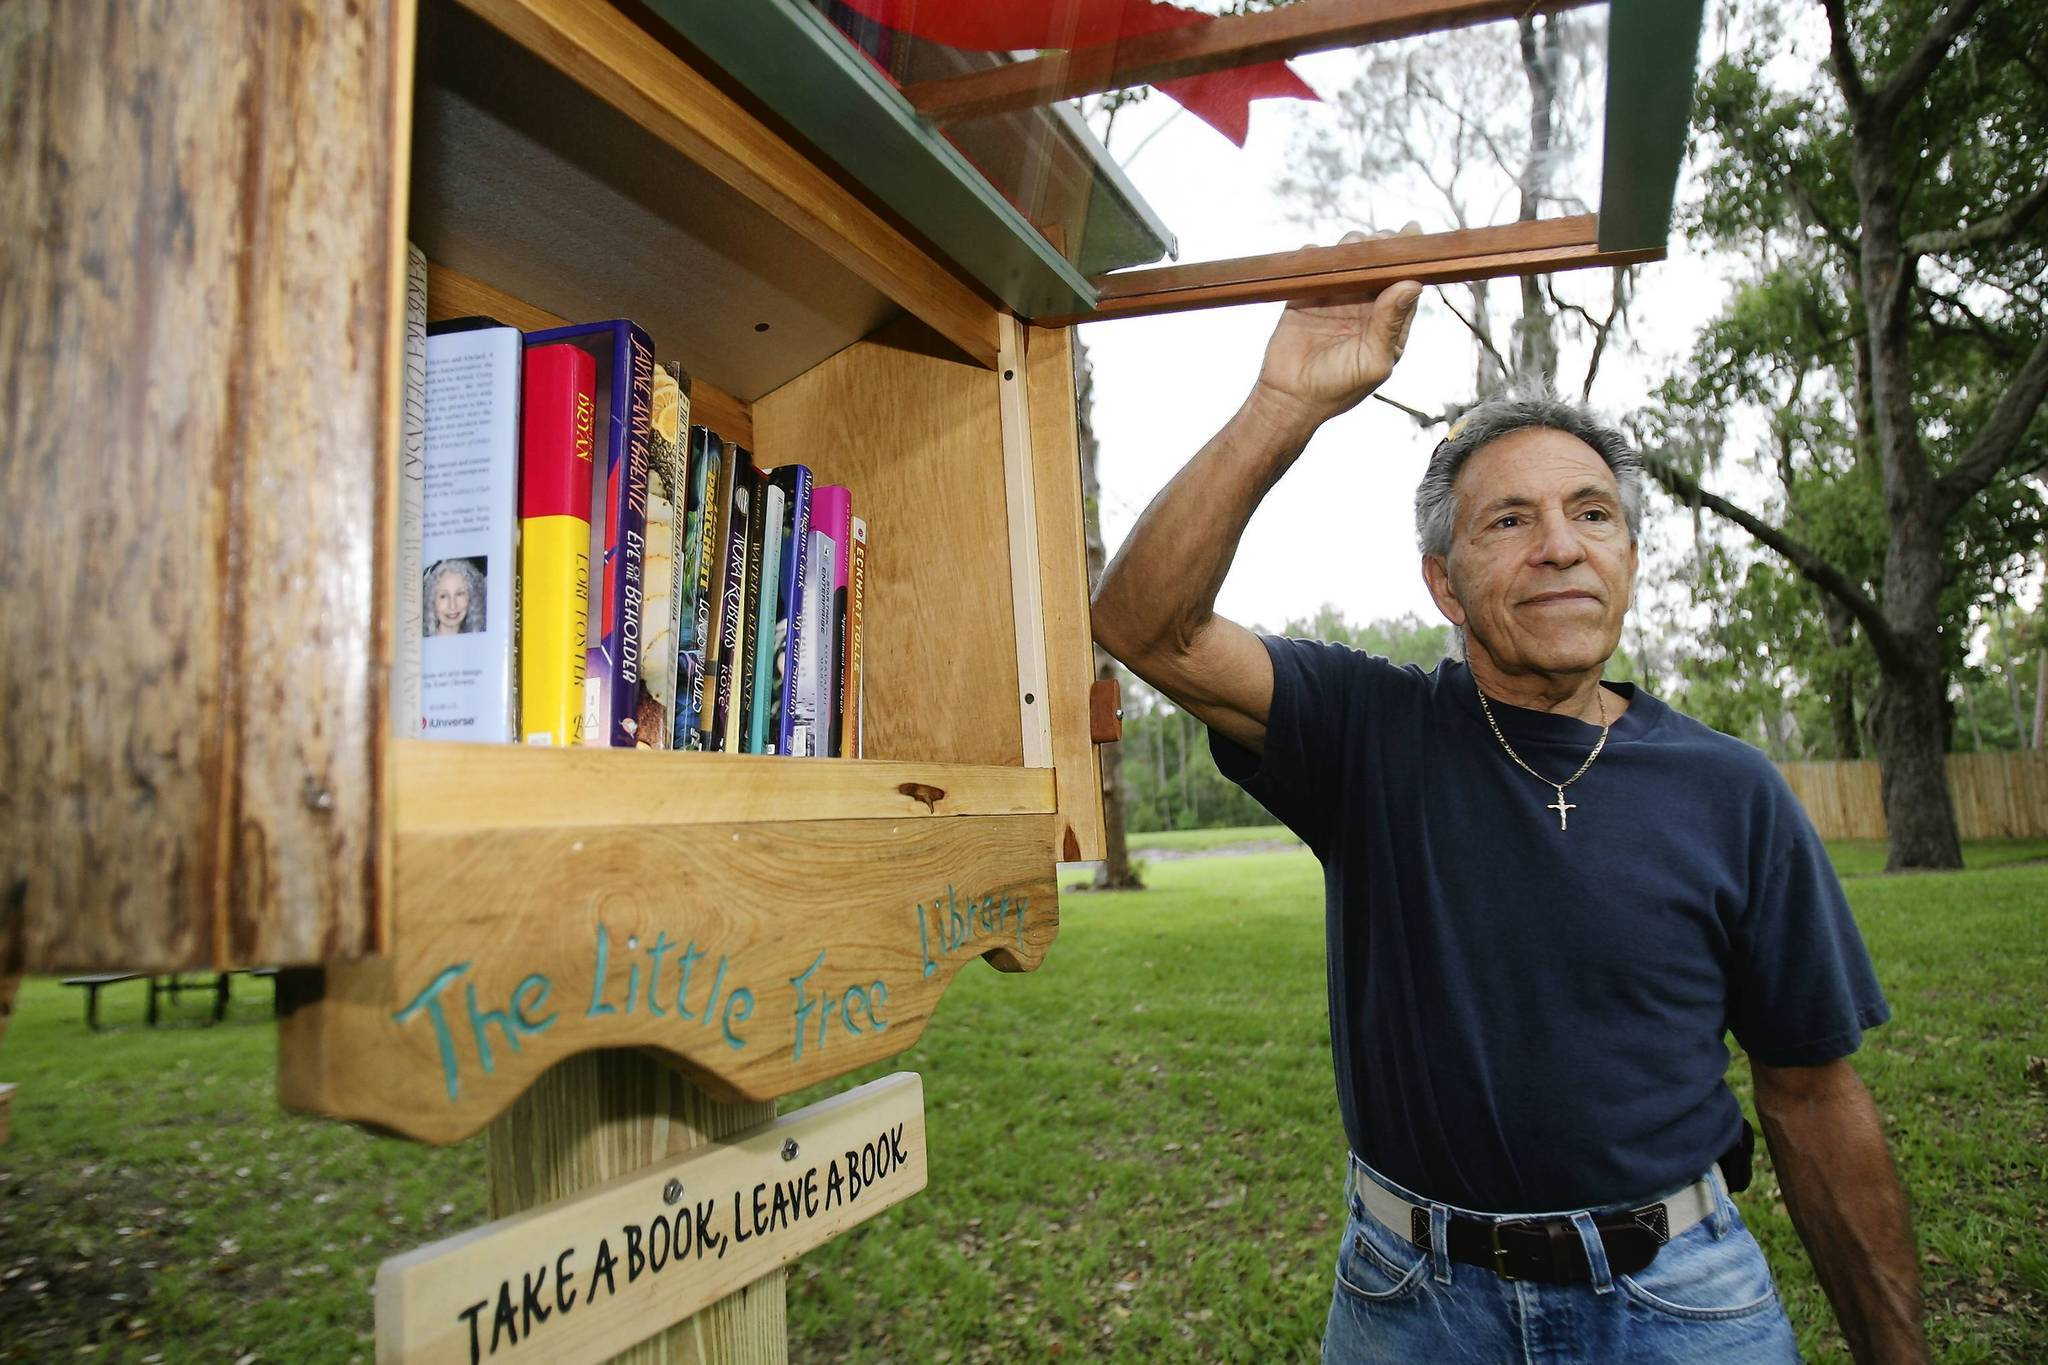 Artist Corado Vittoria poses with the library station he designed and built, during a ribbon-cutting ceremony on Wednesday, June 6, 2012, for the  Little Free Library station at  Aesop's Park in Tavares . (Tom Benitez/Orlando Sentinel